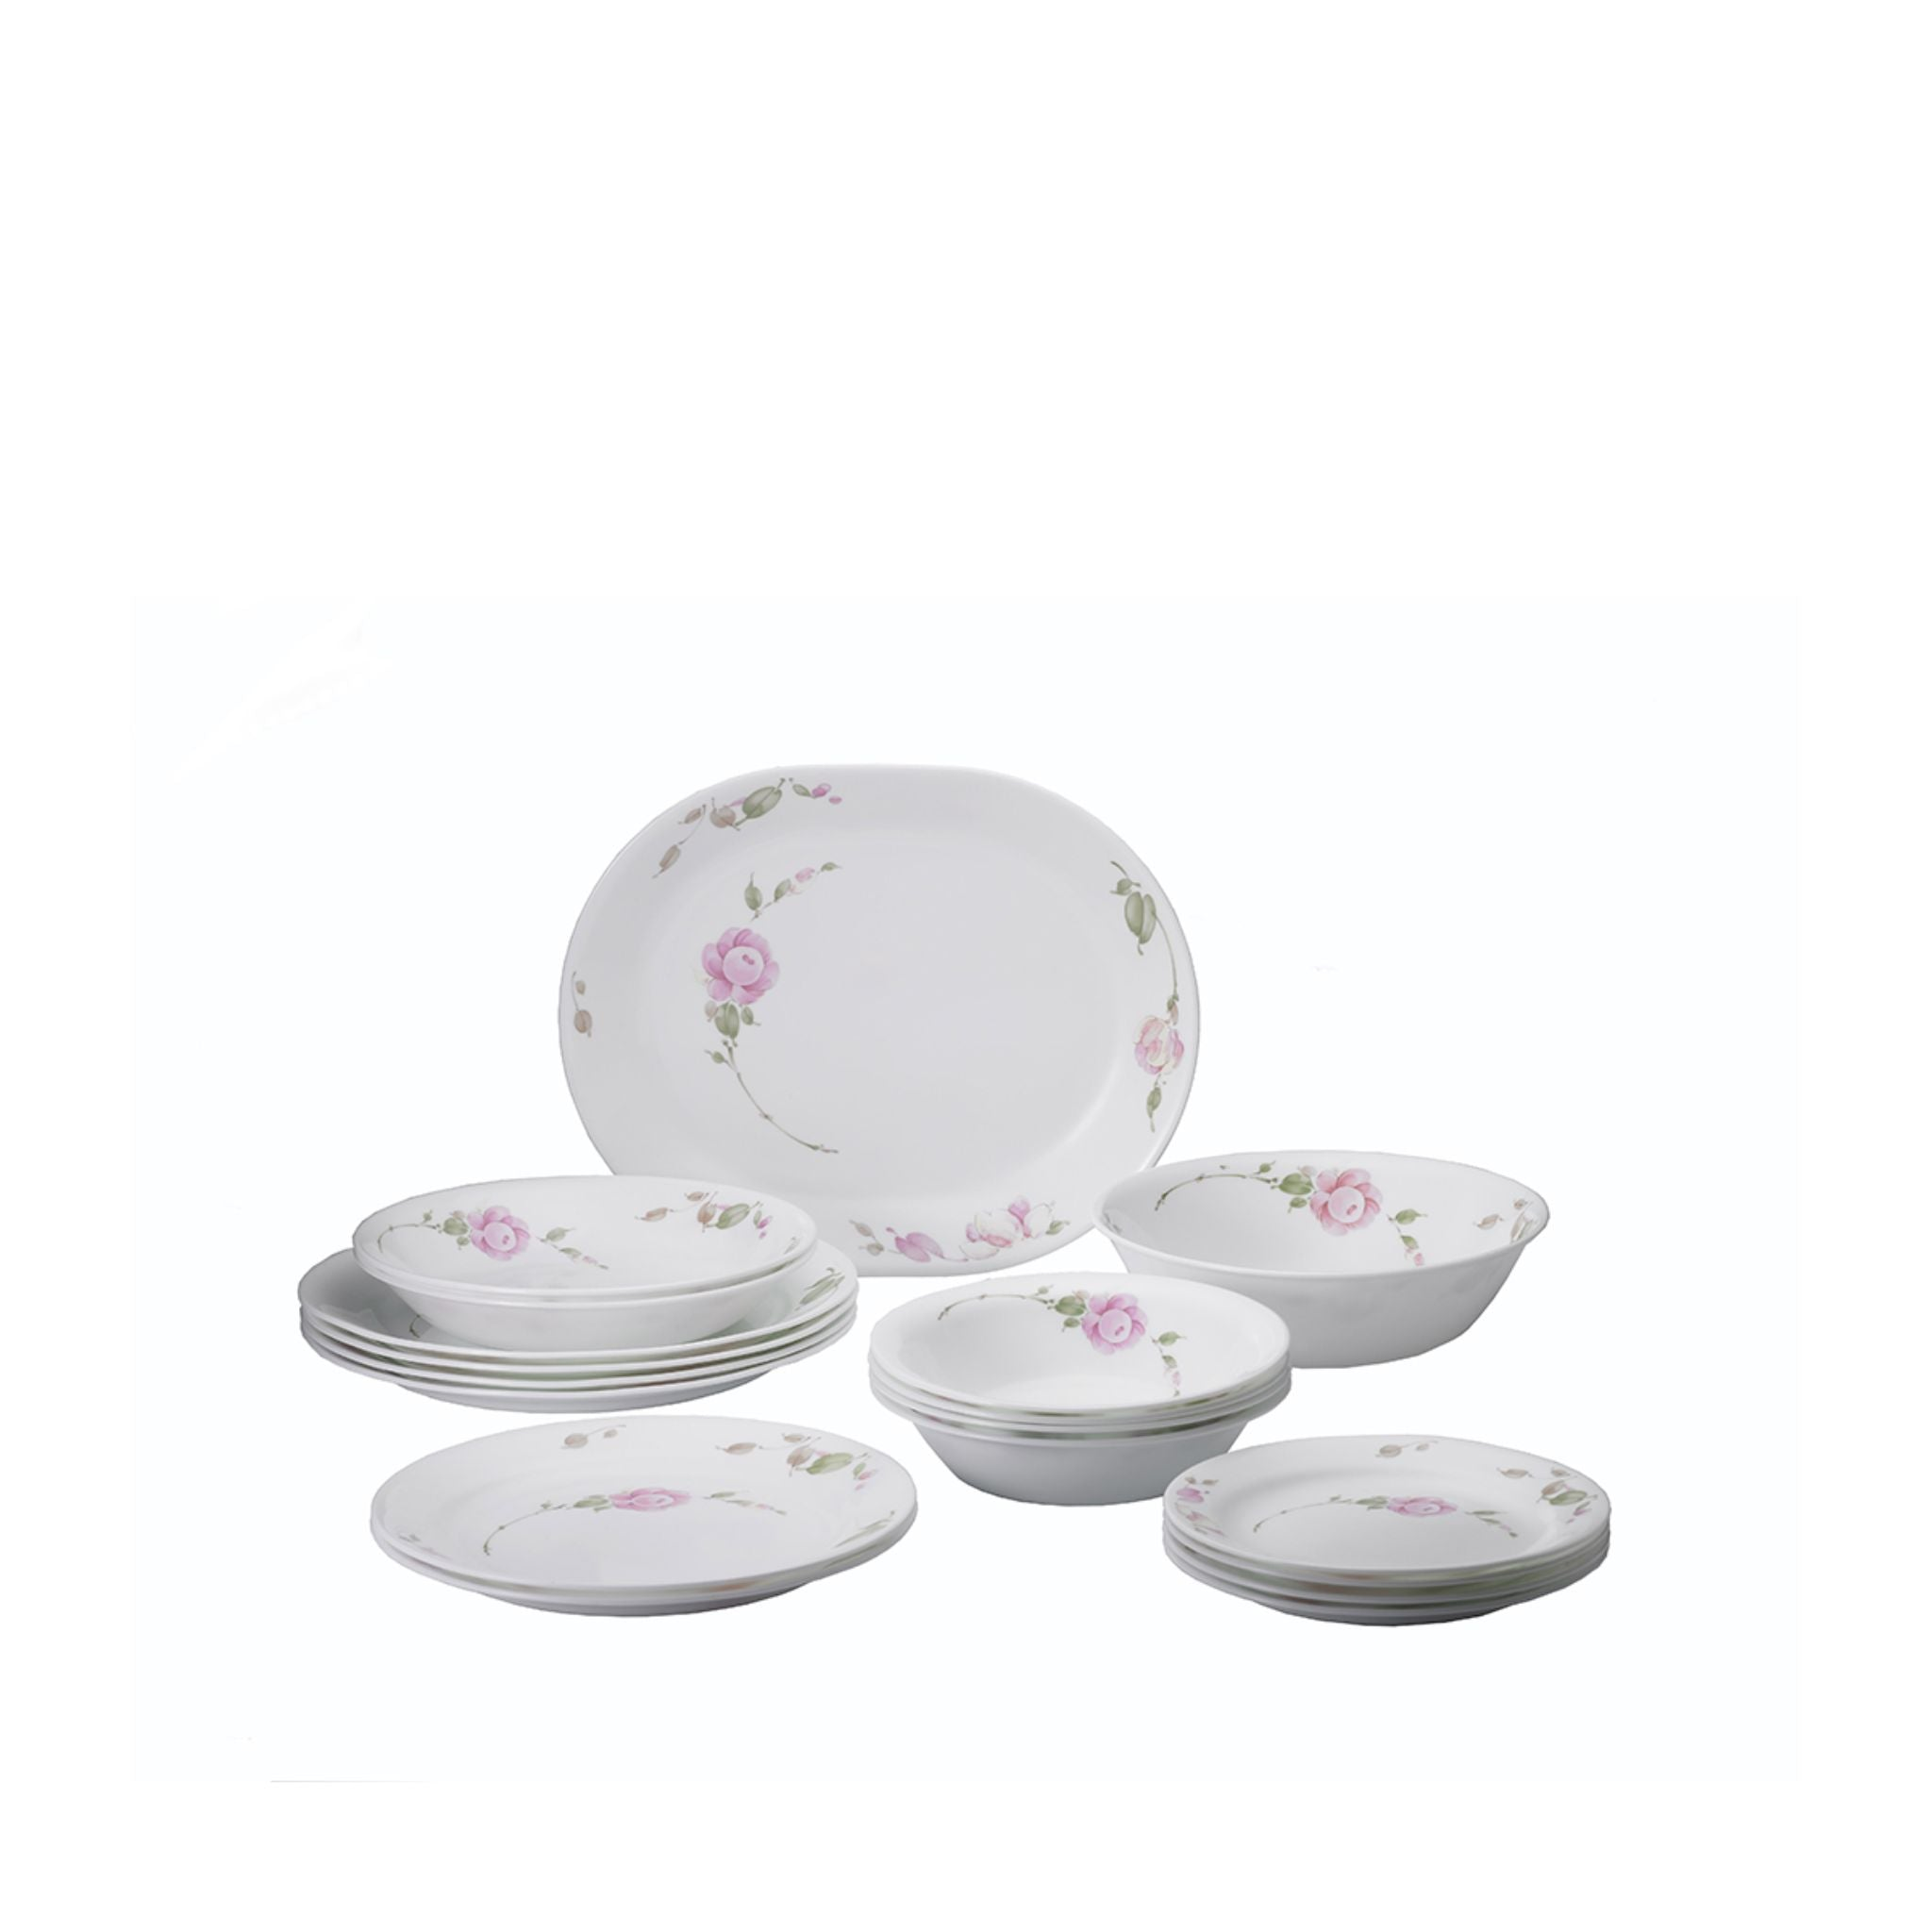 Corelle 18pc Dinner Set - Country Rose